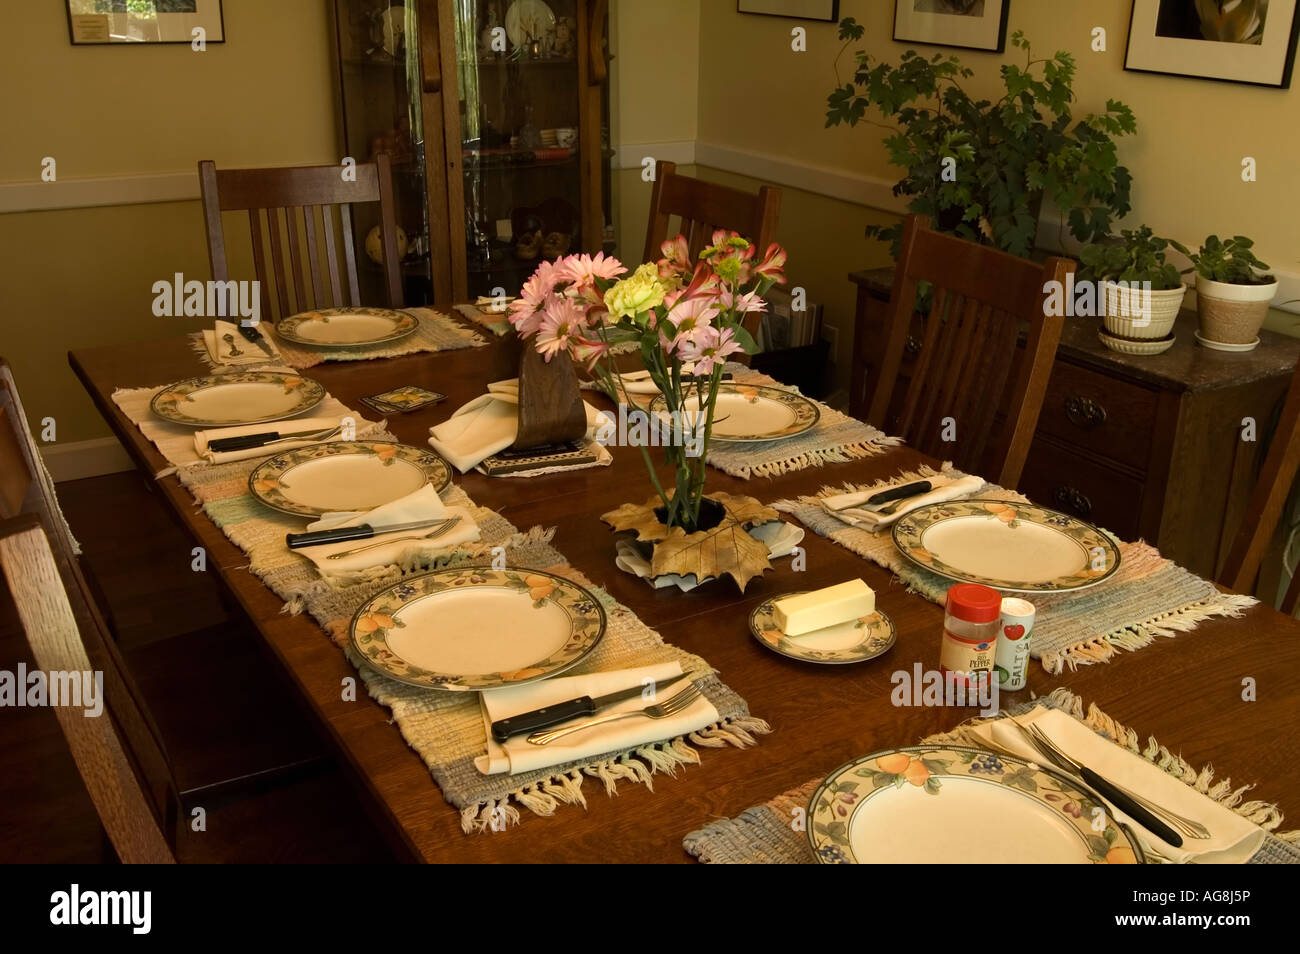 Lovely Dining Room Table Set Up For Meal